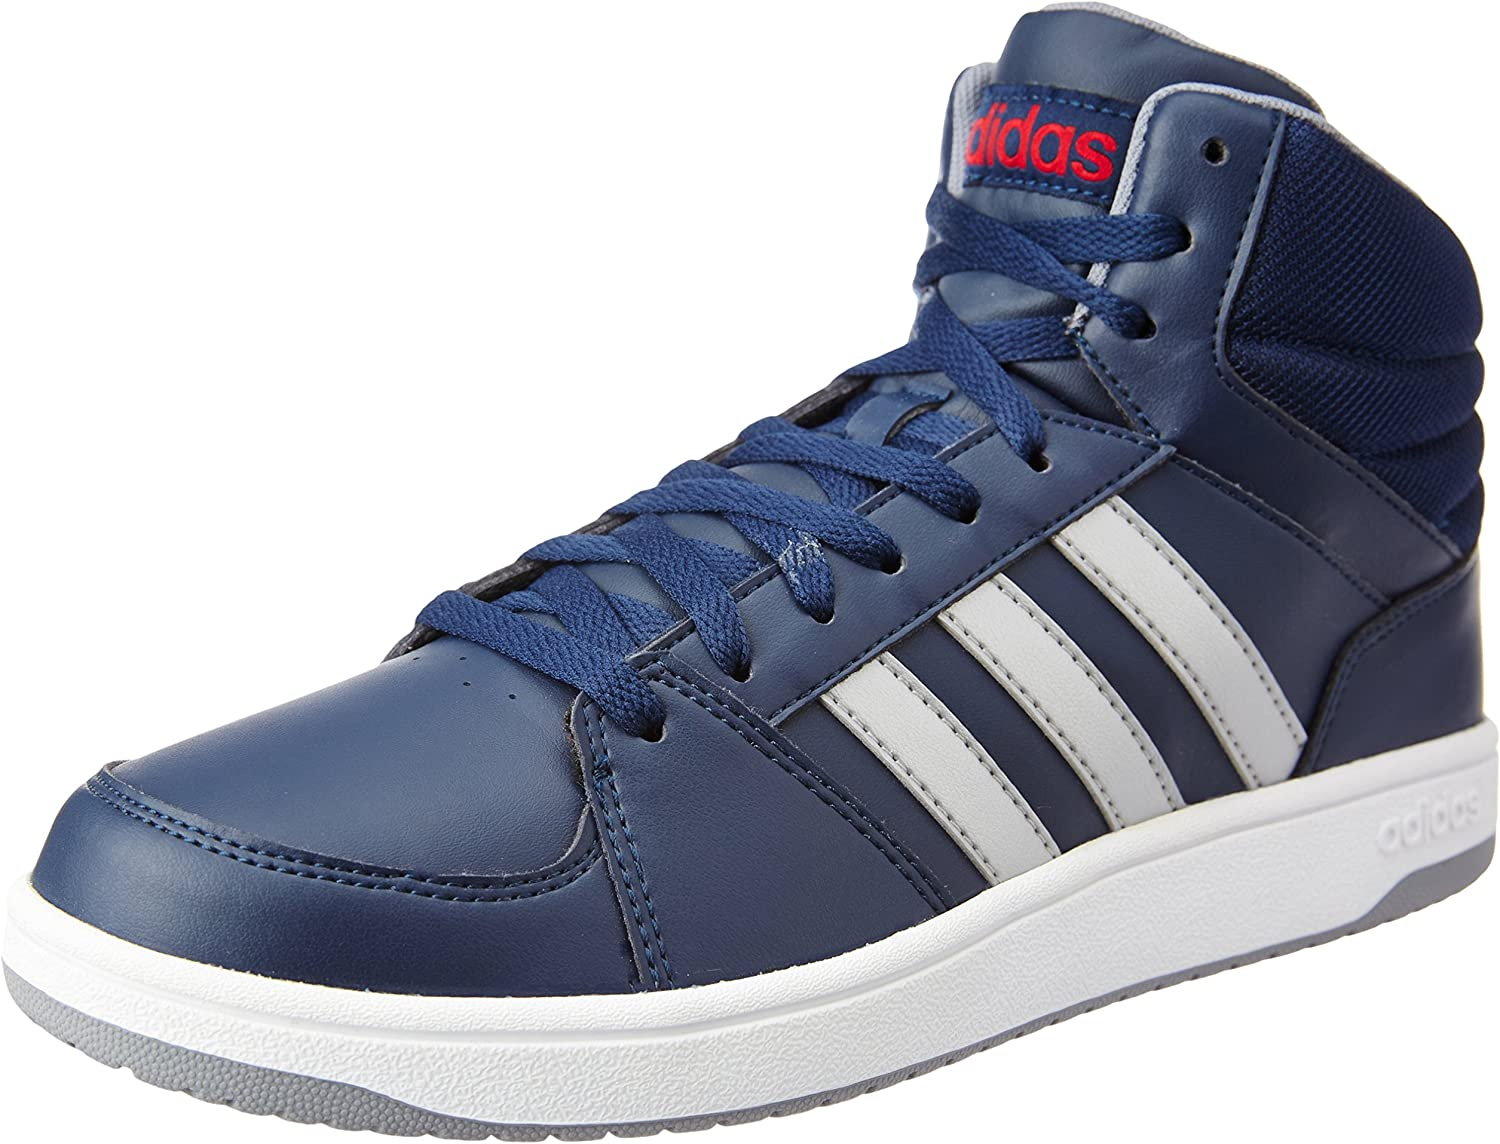 Adidas Hoops Vs Mid, Men's Trainers